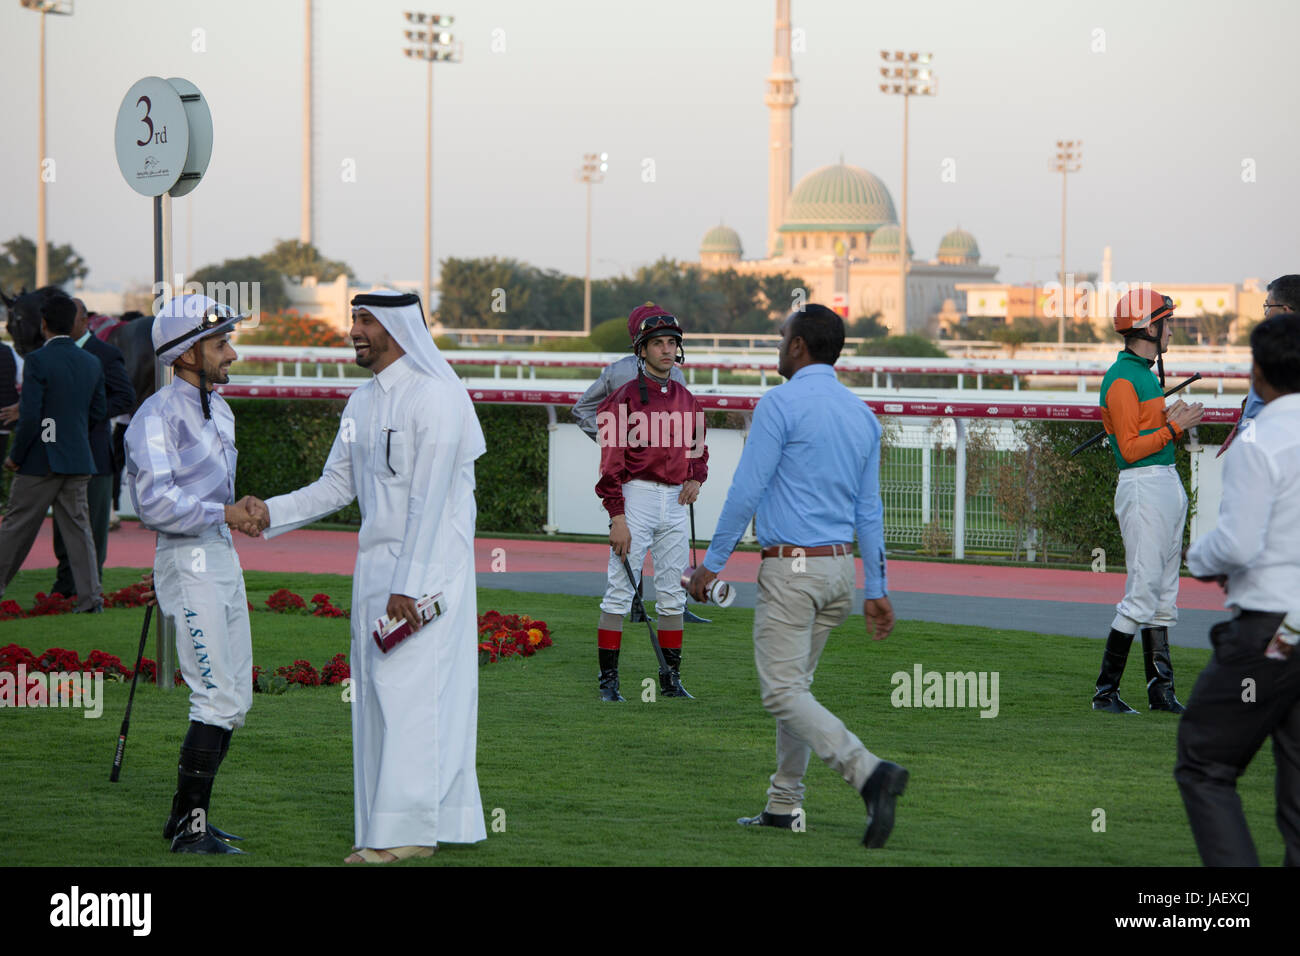 Jockeys and racehorse owners in the paddock before a race at the Racing and Equestrian Club in Doha, Qatar. Stock Photo